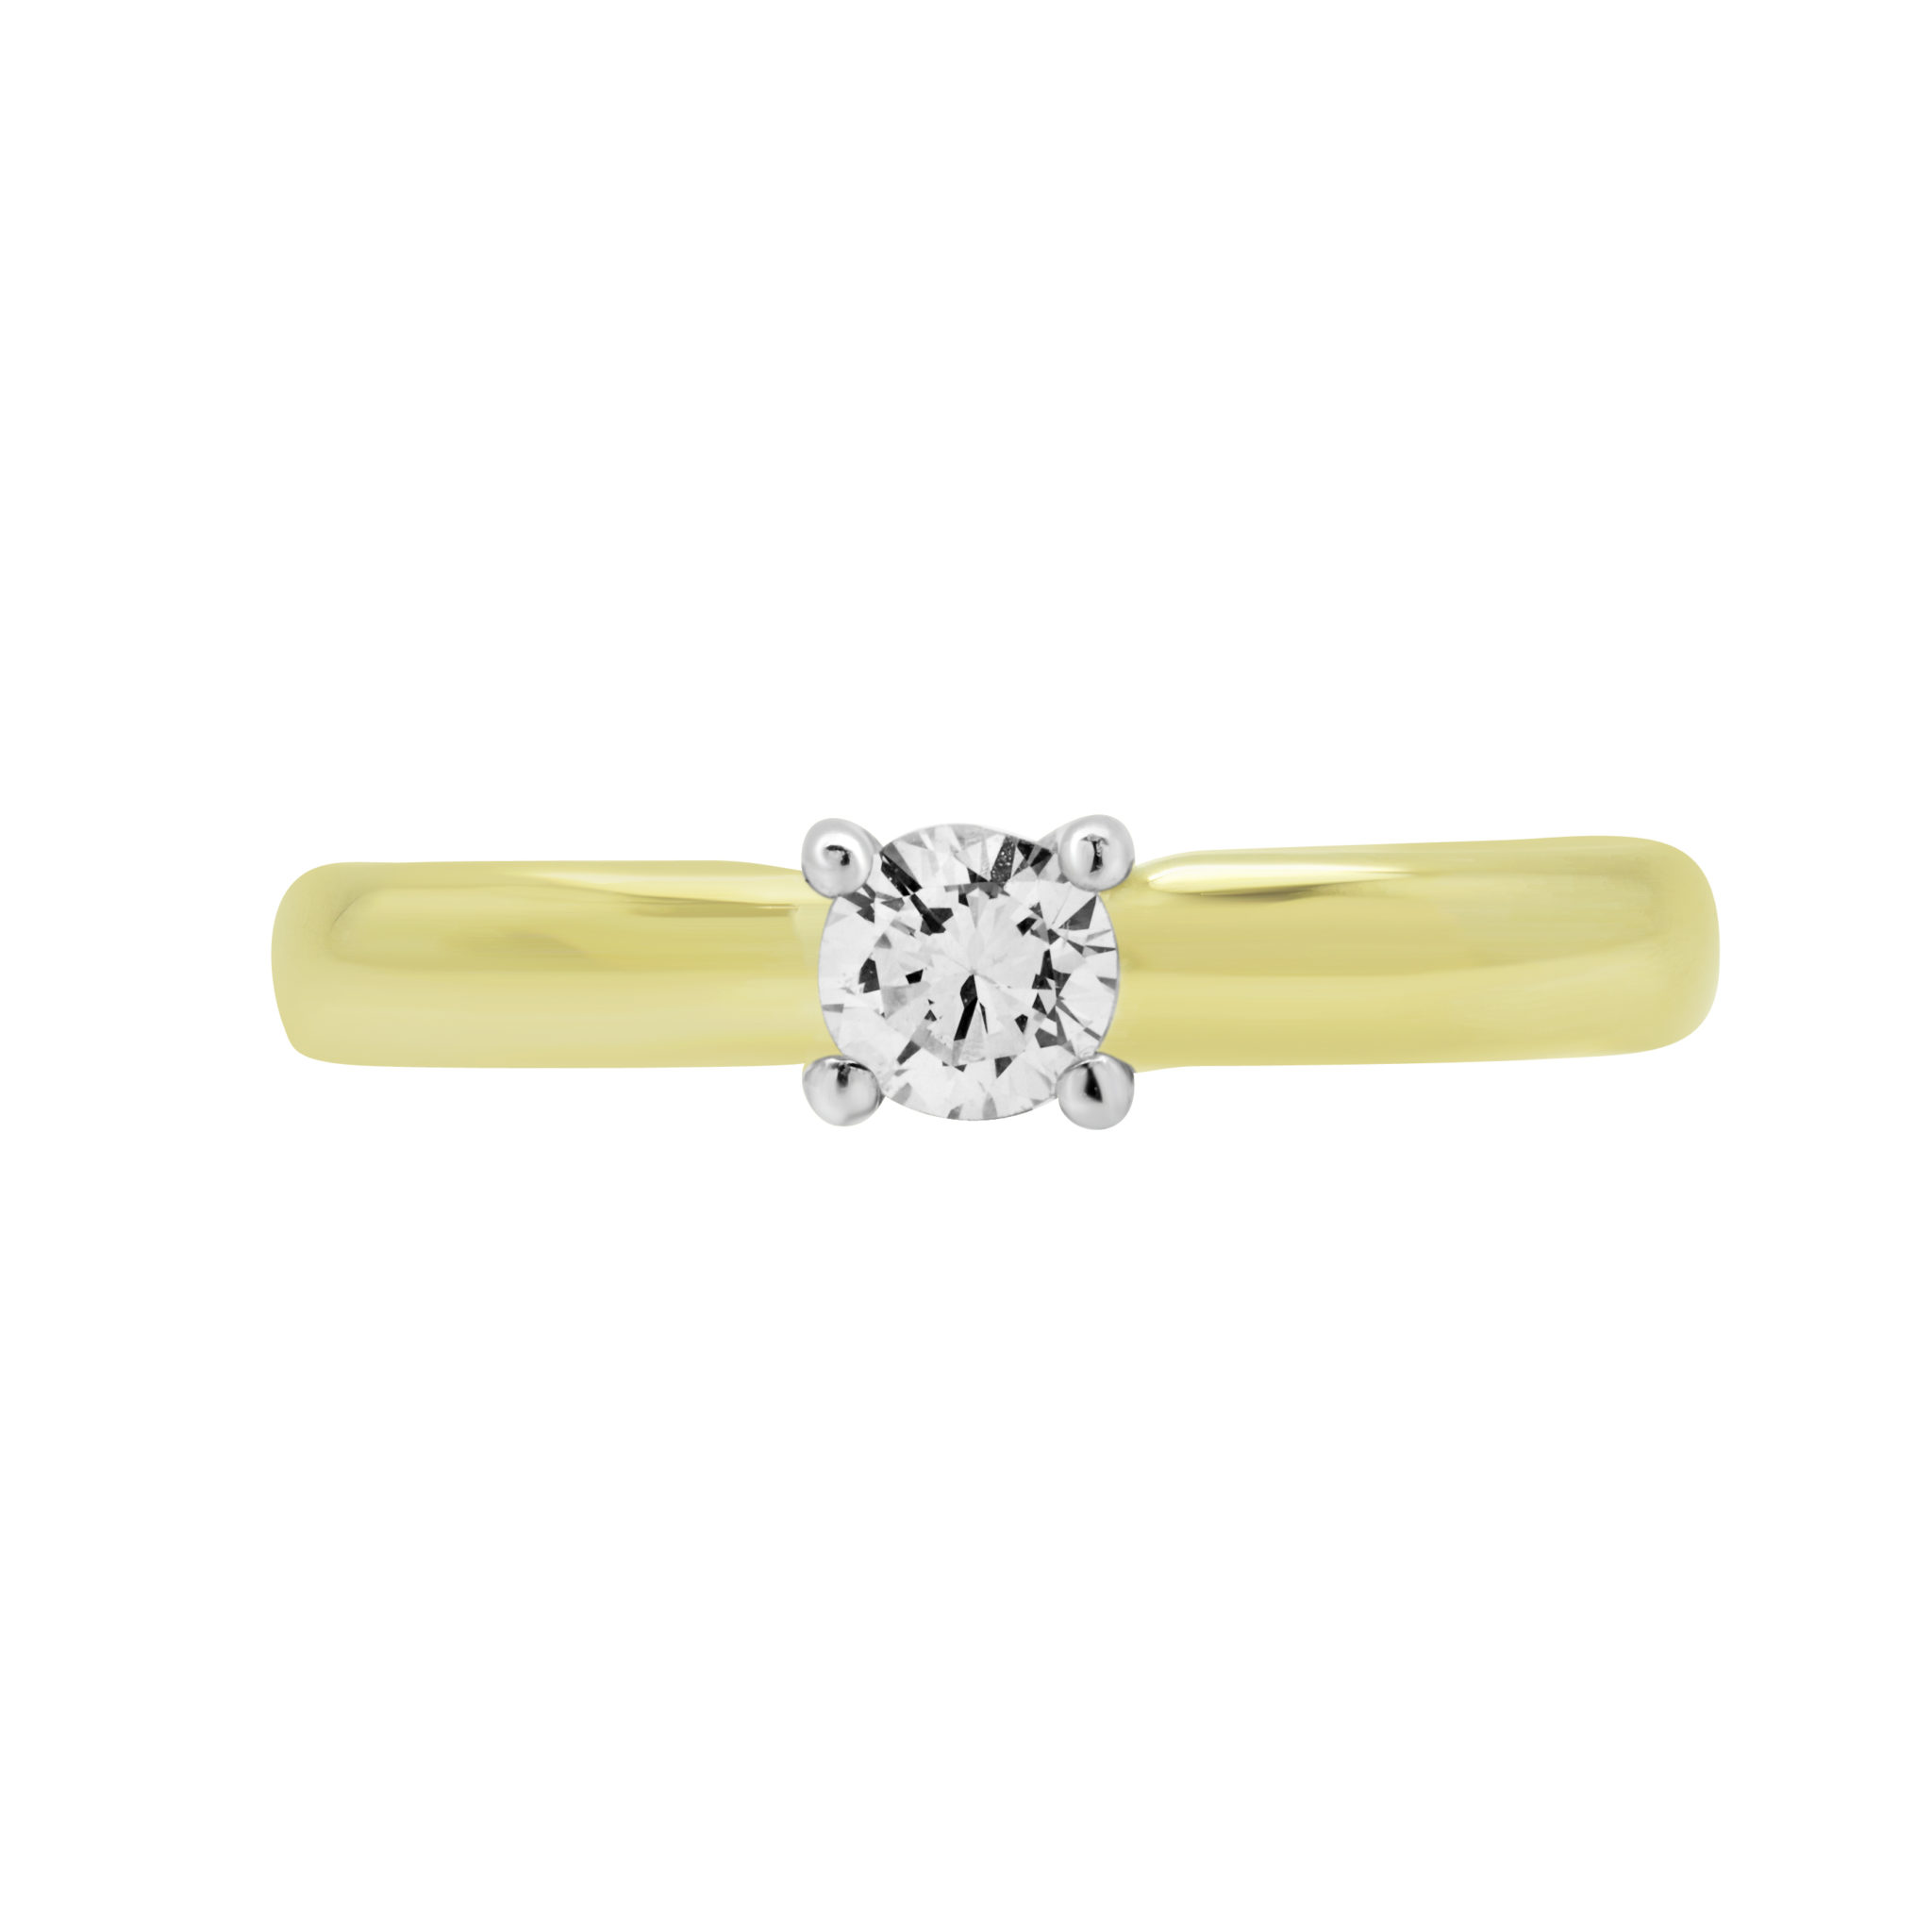 0.20 CARAT ROUND DIAMOND SOLITAIRE ENGAGEMENT RING IN 14K YELLOW GOLD